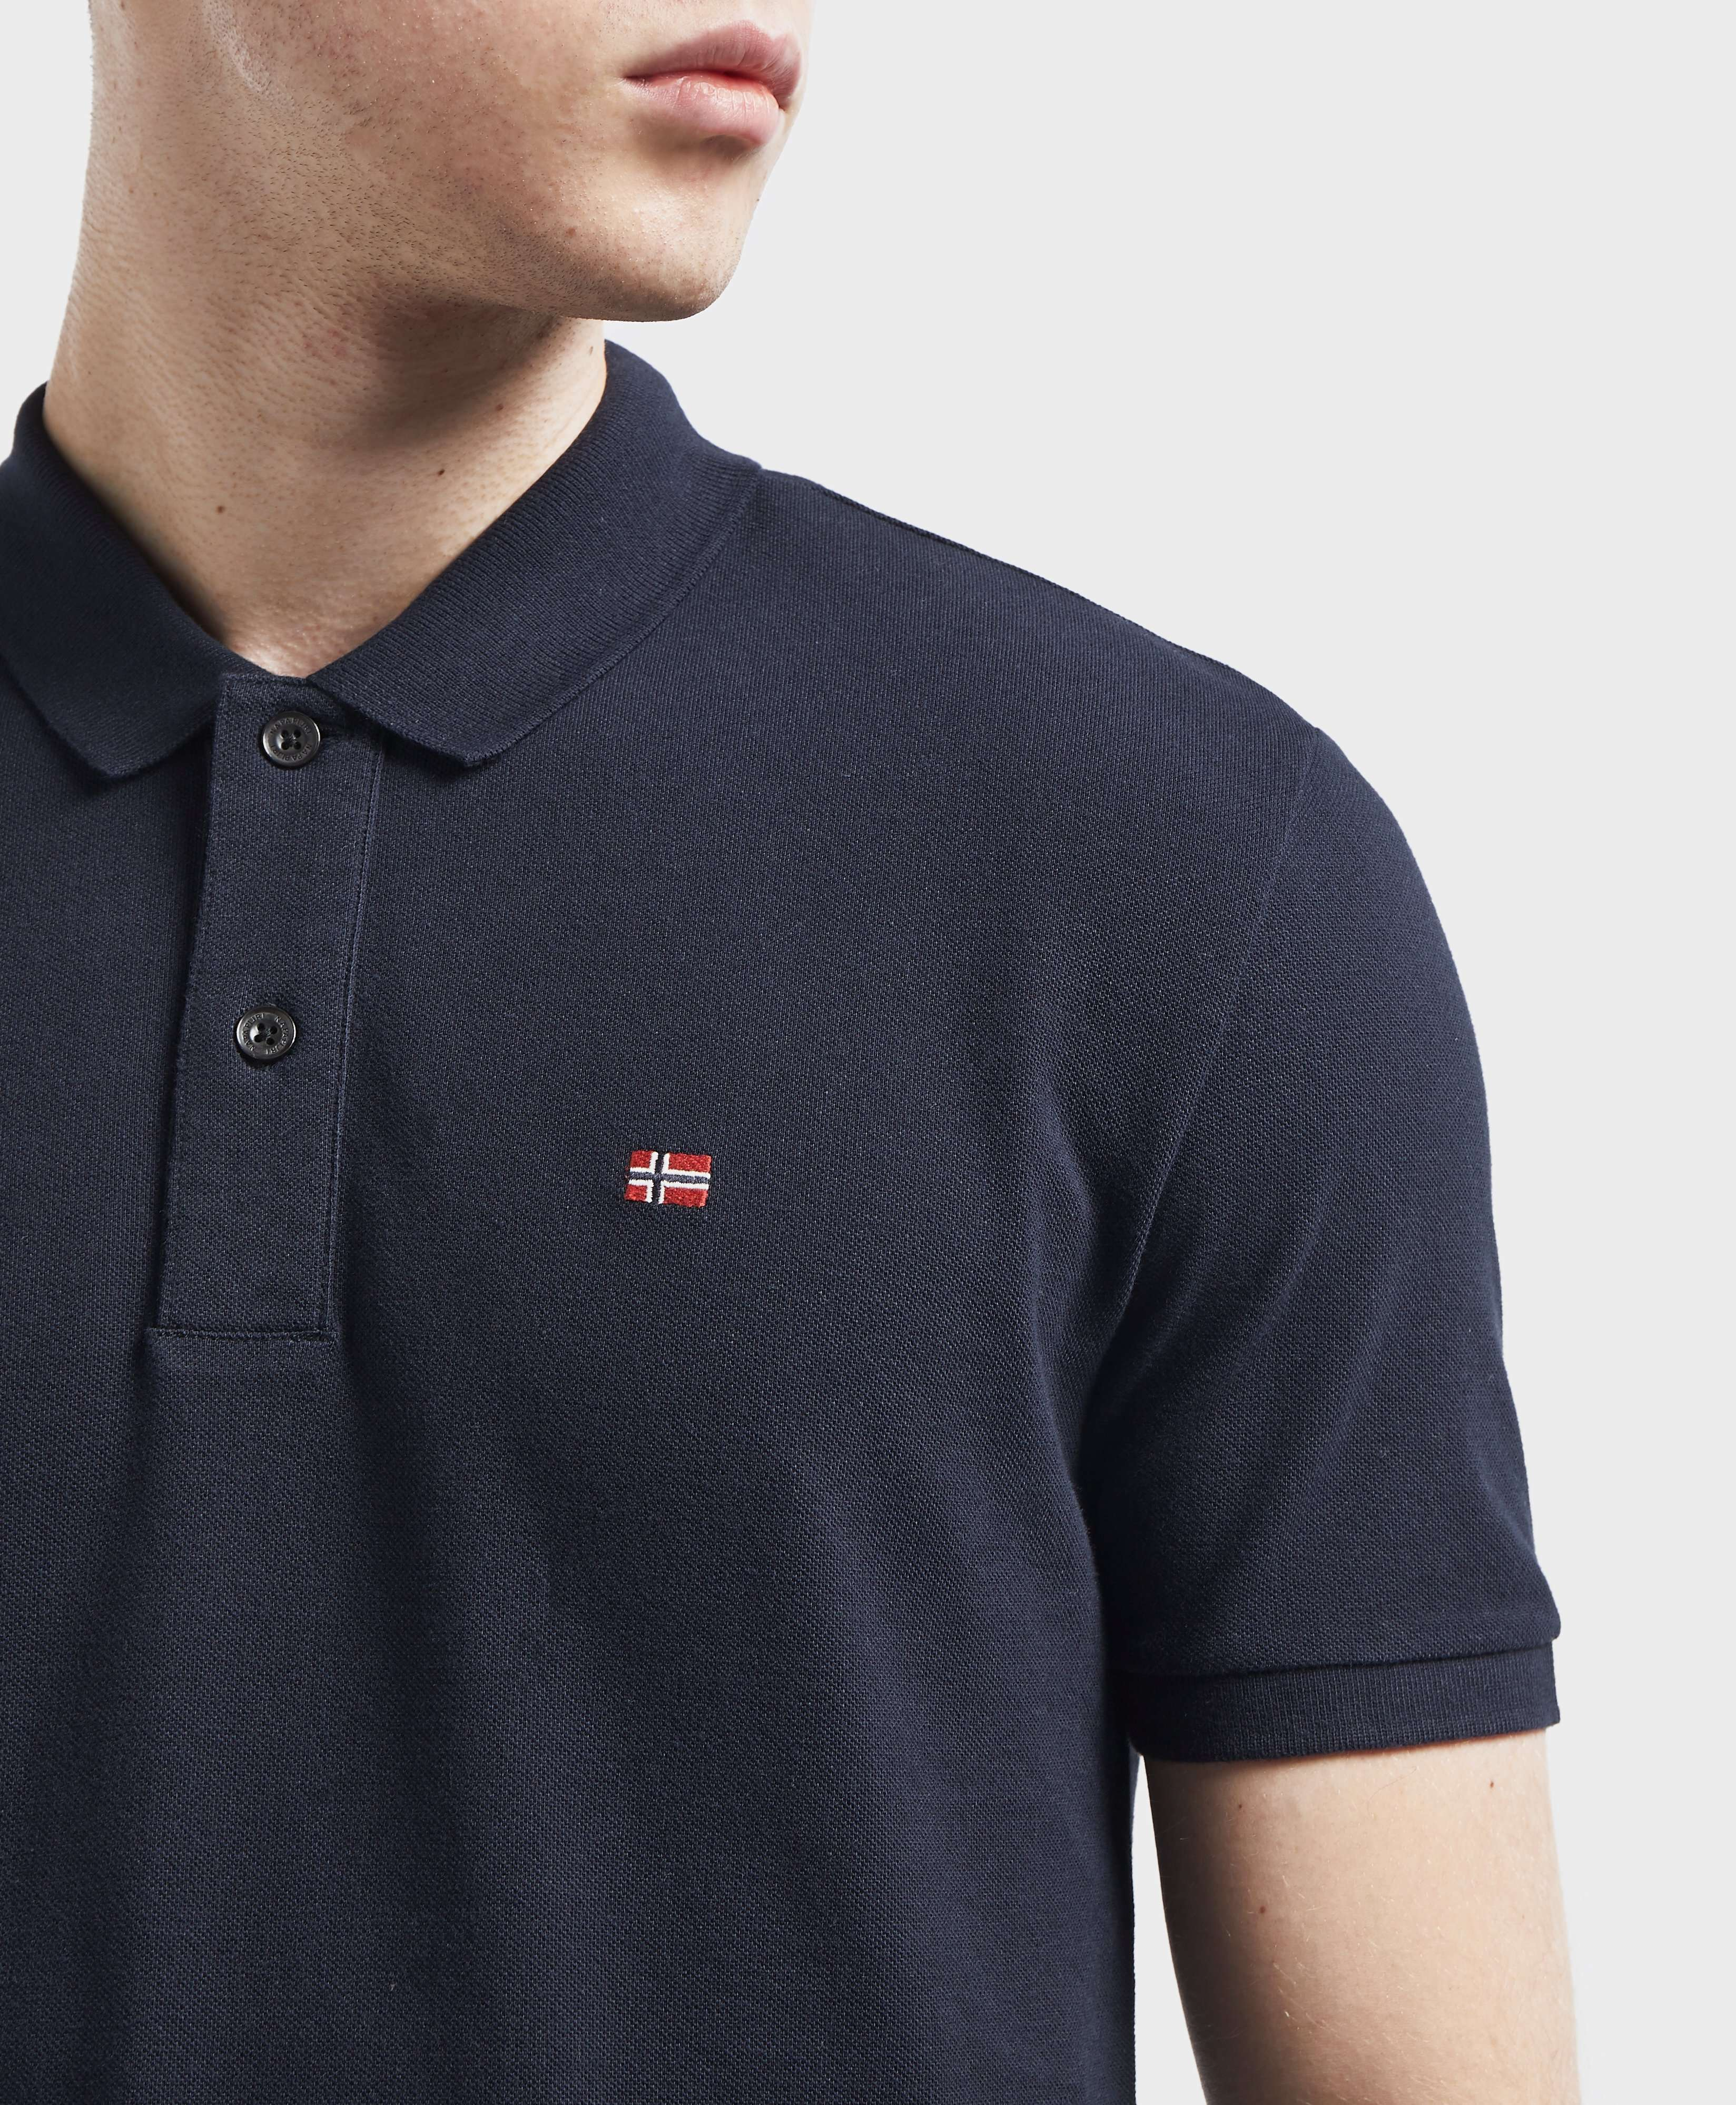 Napapijri Small Flag Short Sleeve Polo Shirt